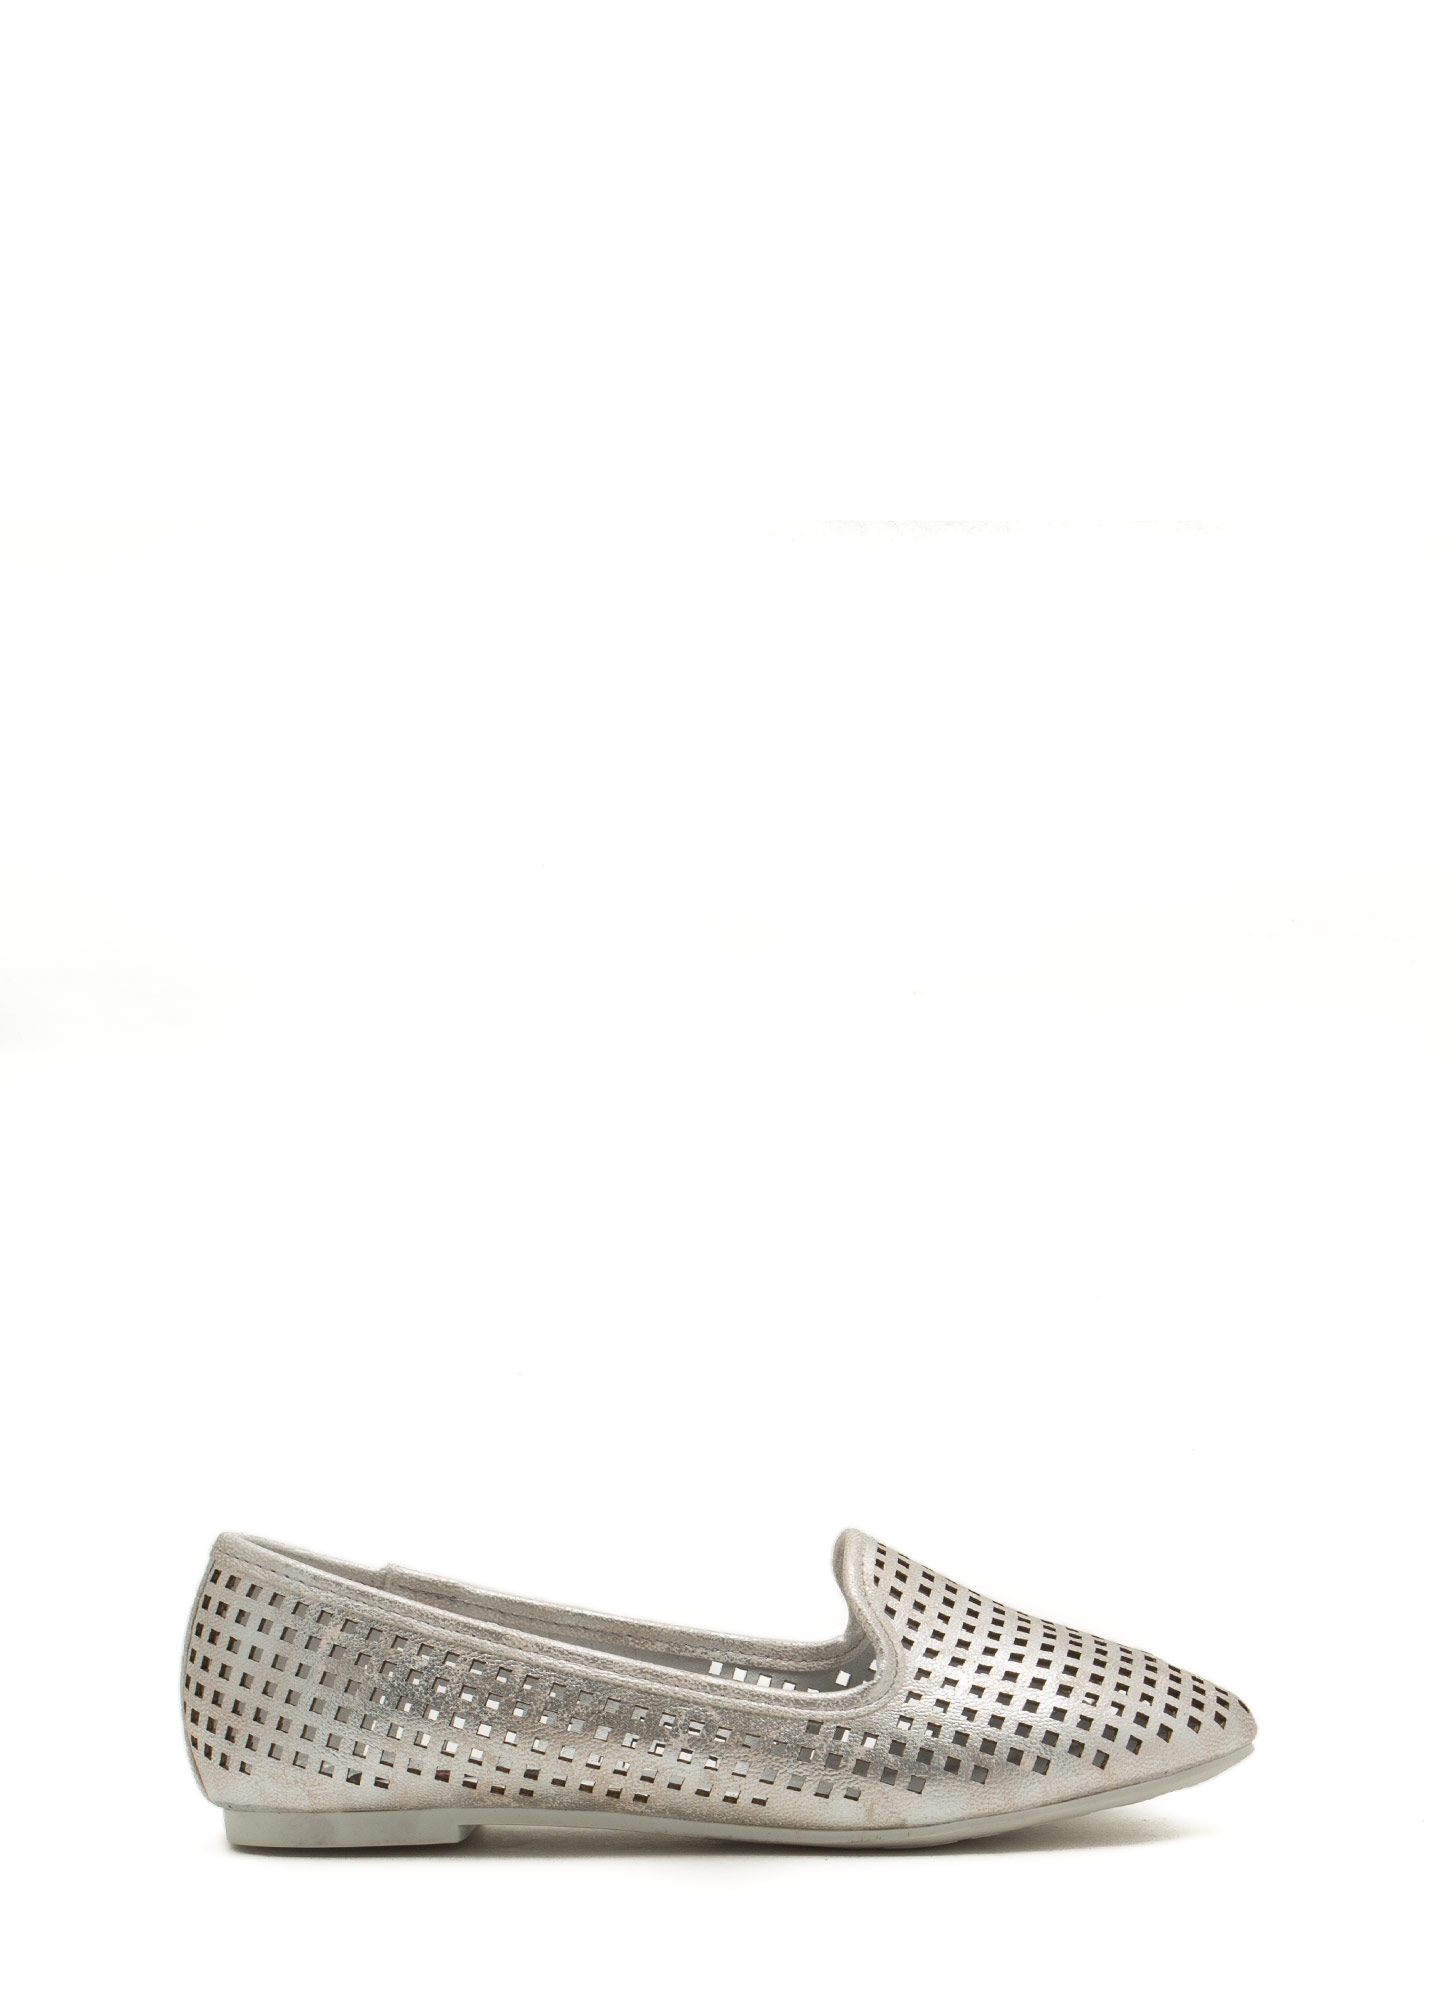 Per-forated Ten Smoking Flats SILVER